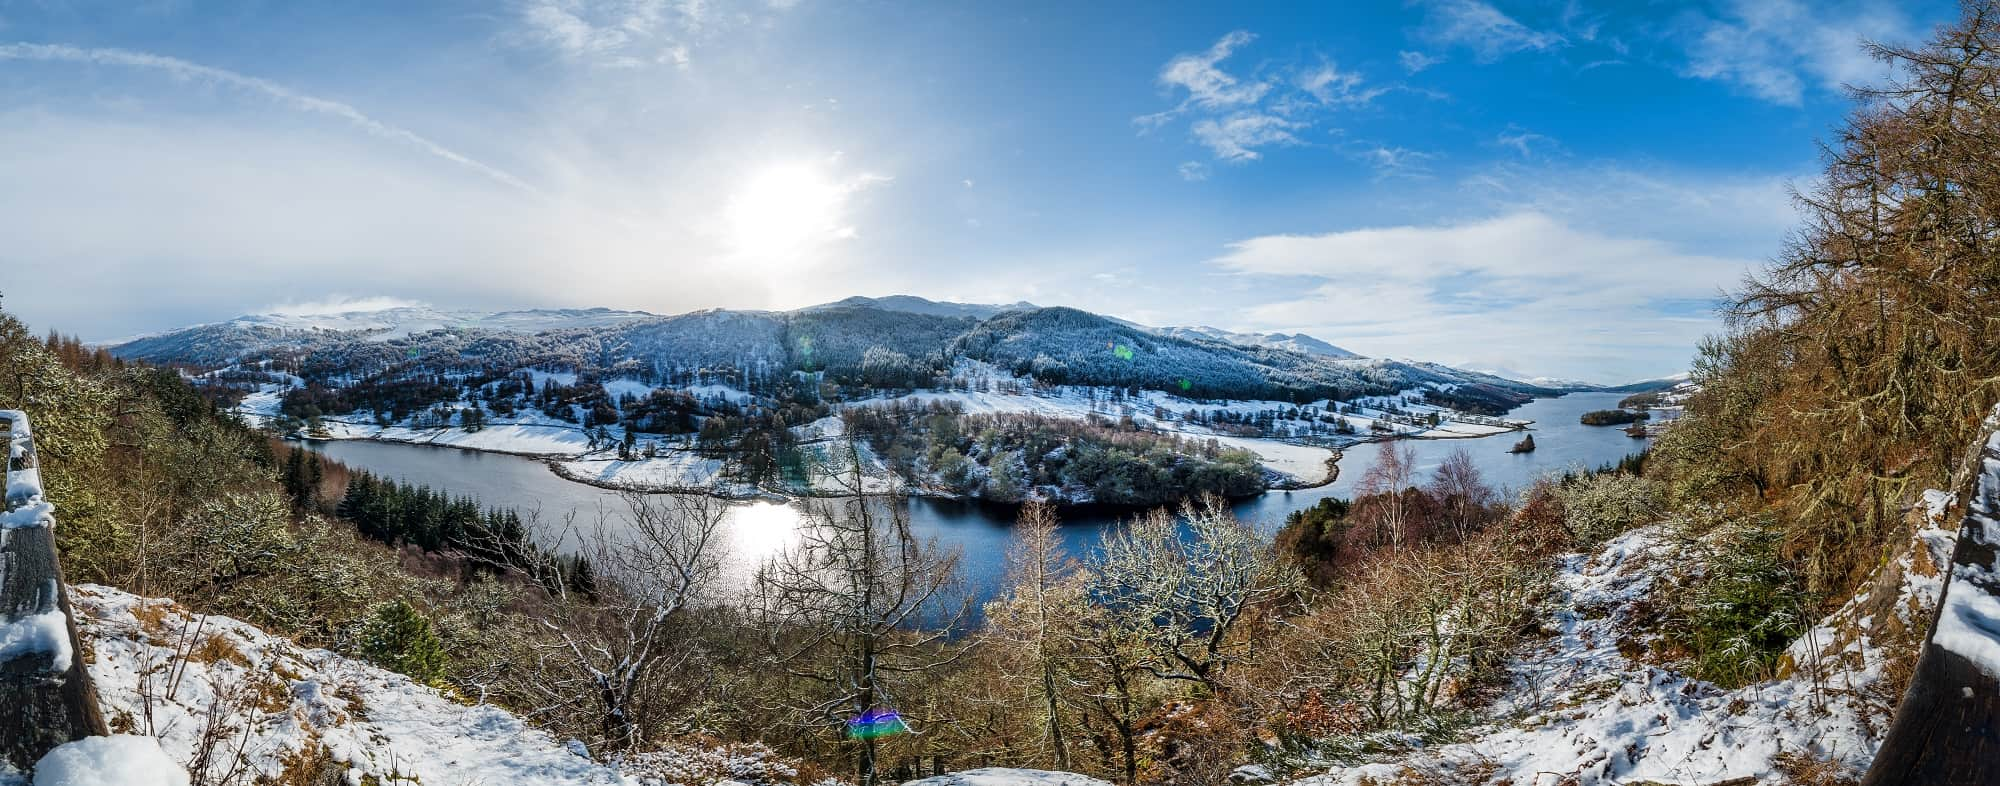 Hogmanay in the Highlands: Experience an Authentic Scottish New Year with the Dunalastair Hotel Suites